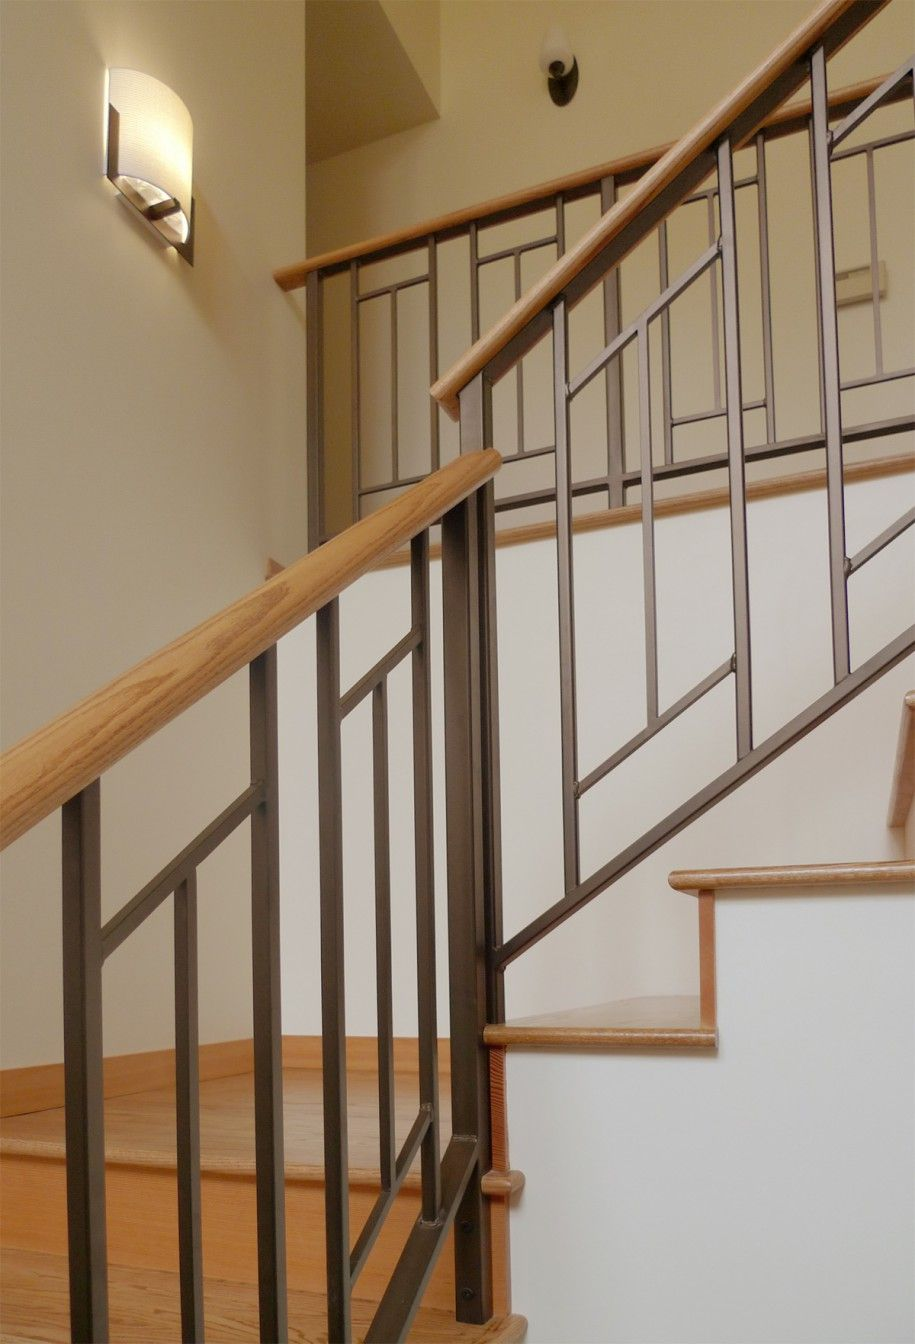 Furniture Simple And Sleek Contemporary Staircase   Modern Banisters And Railings